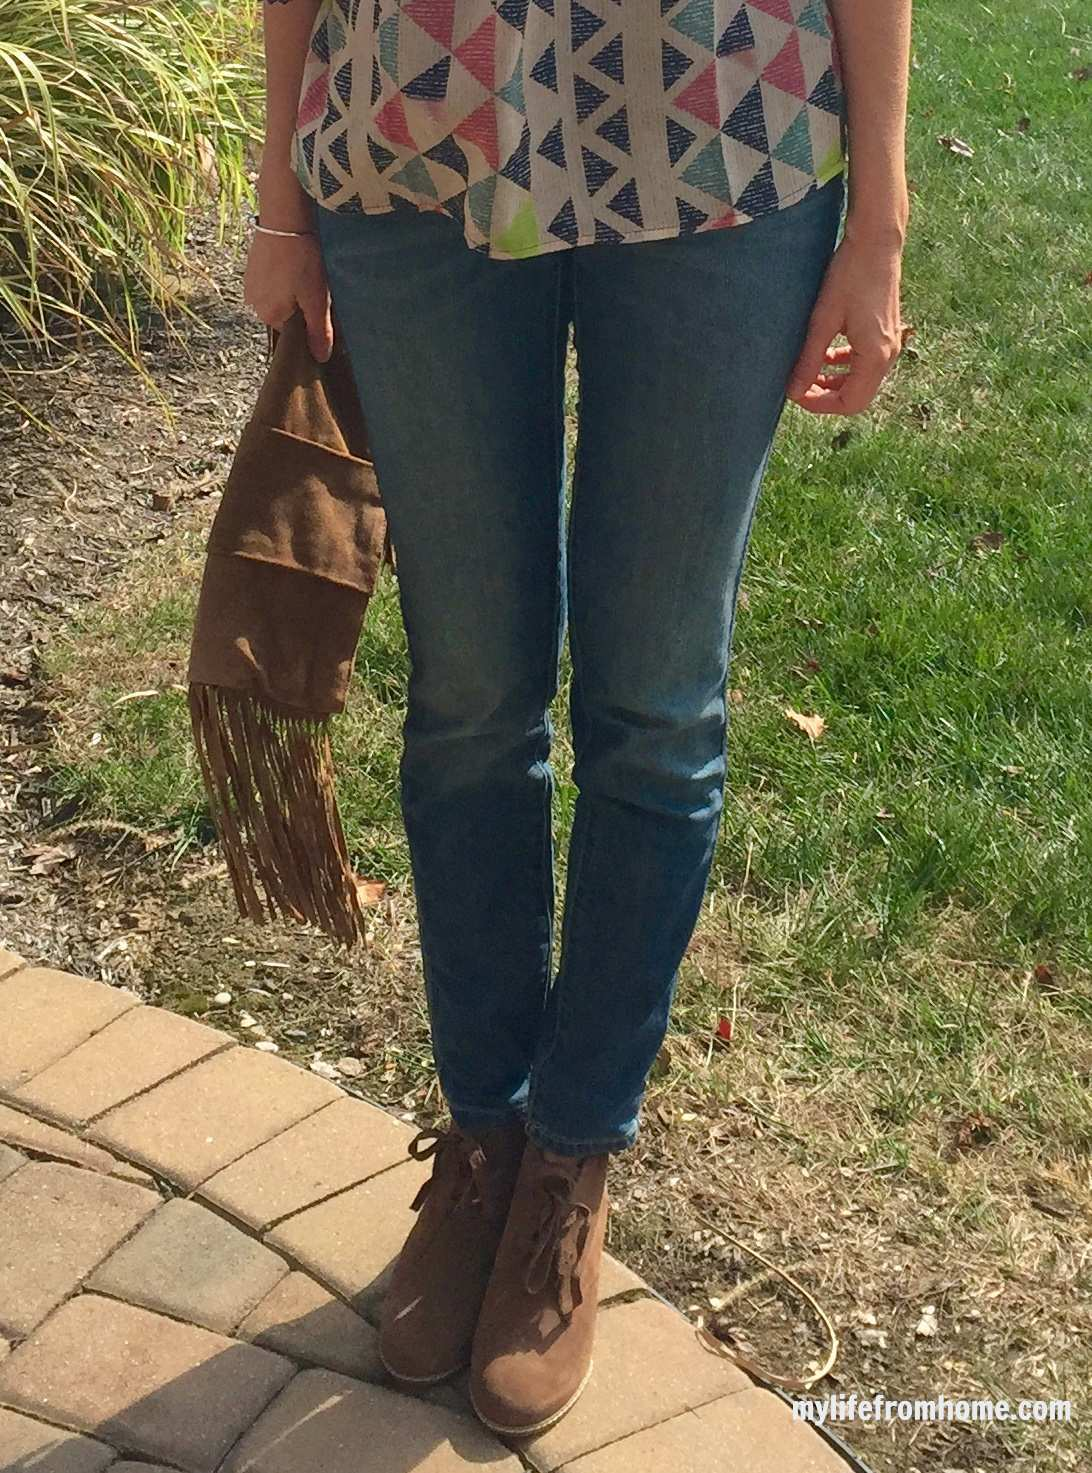 Fringe Purse and Wedge Booties by www.mylifefromhome.com